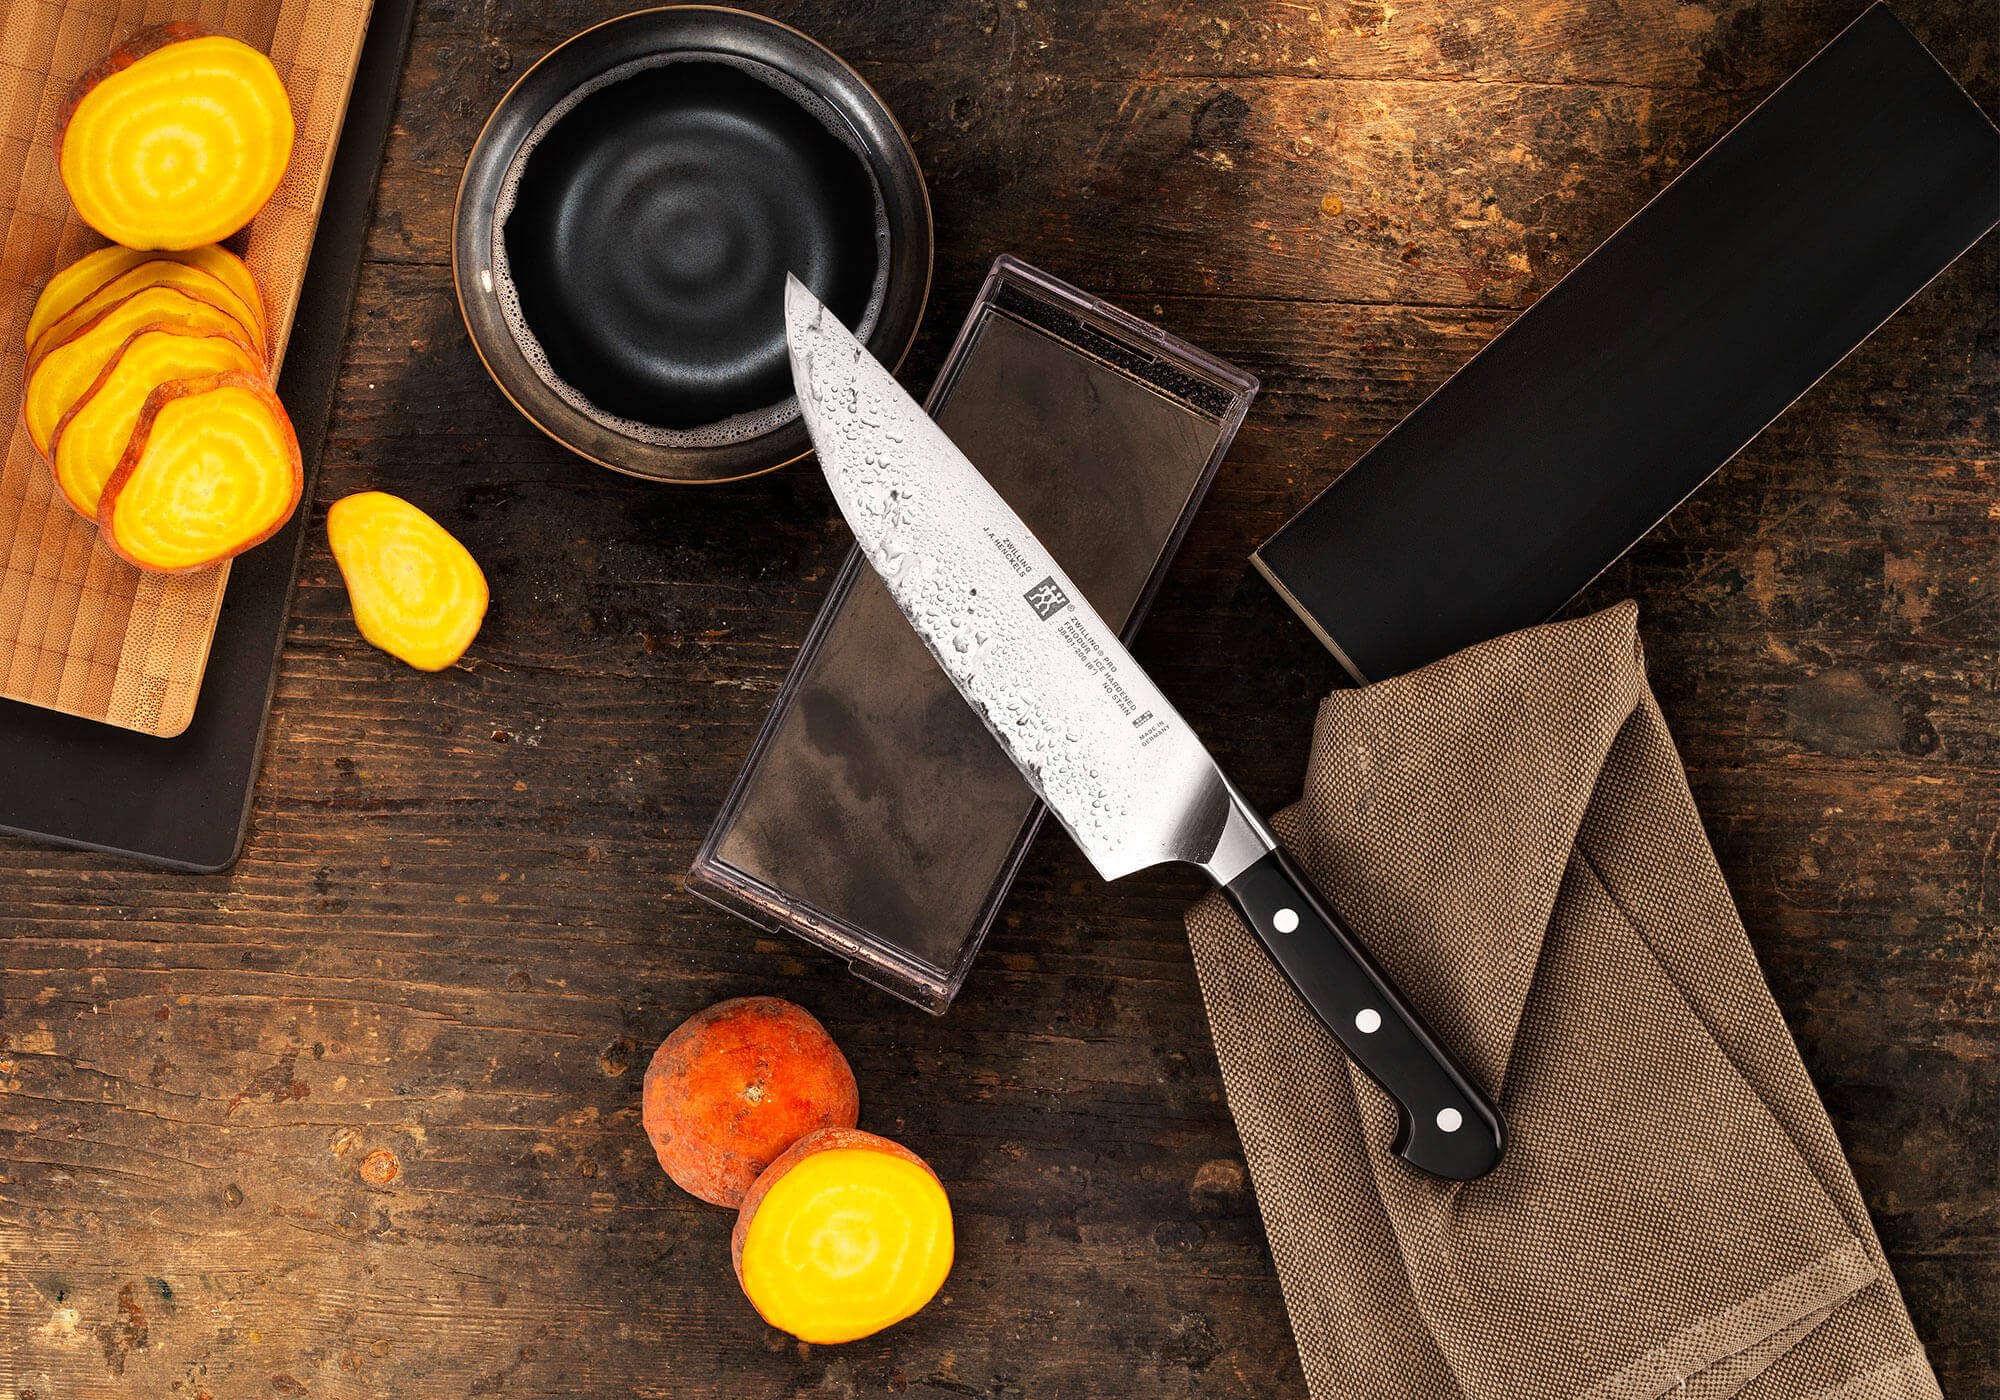 STAY SHARP – HOW TO SHARPEN YOUR KNIVES